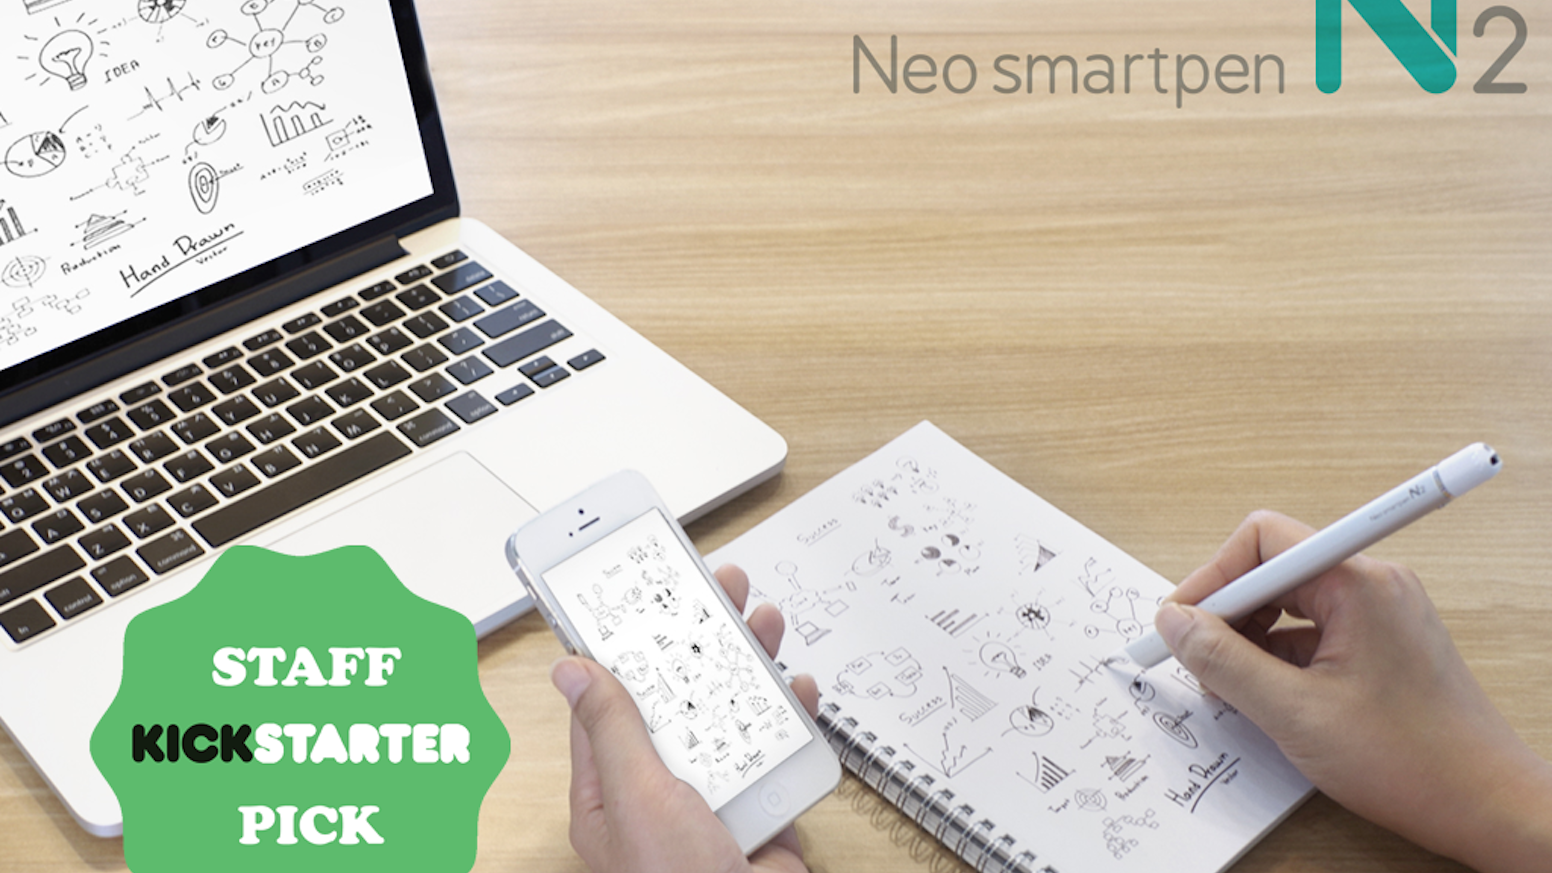 Neo smartpen N2 is a smartpen that writes on paper but also mirrors into smart devices. iOS and Android compatible. Support us!